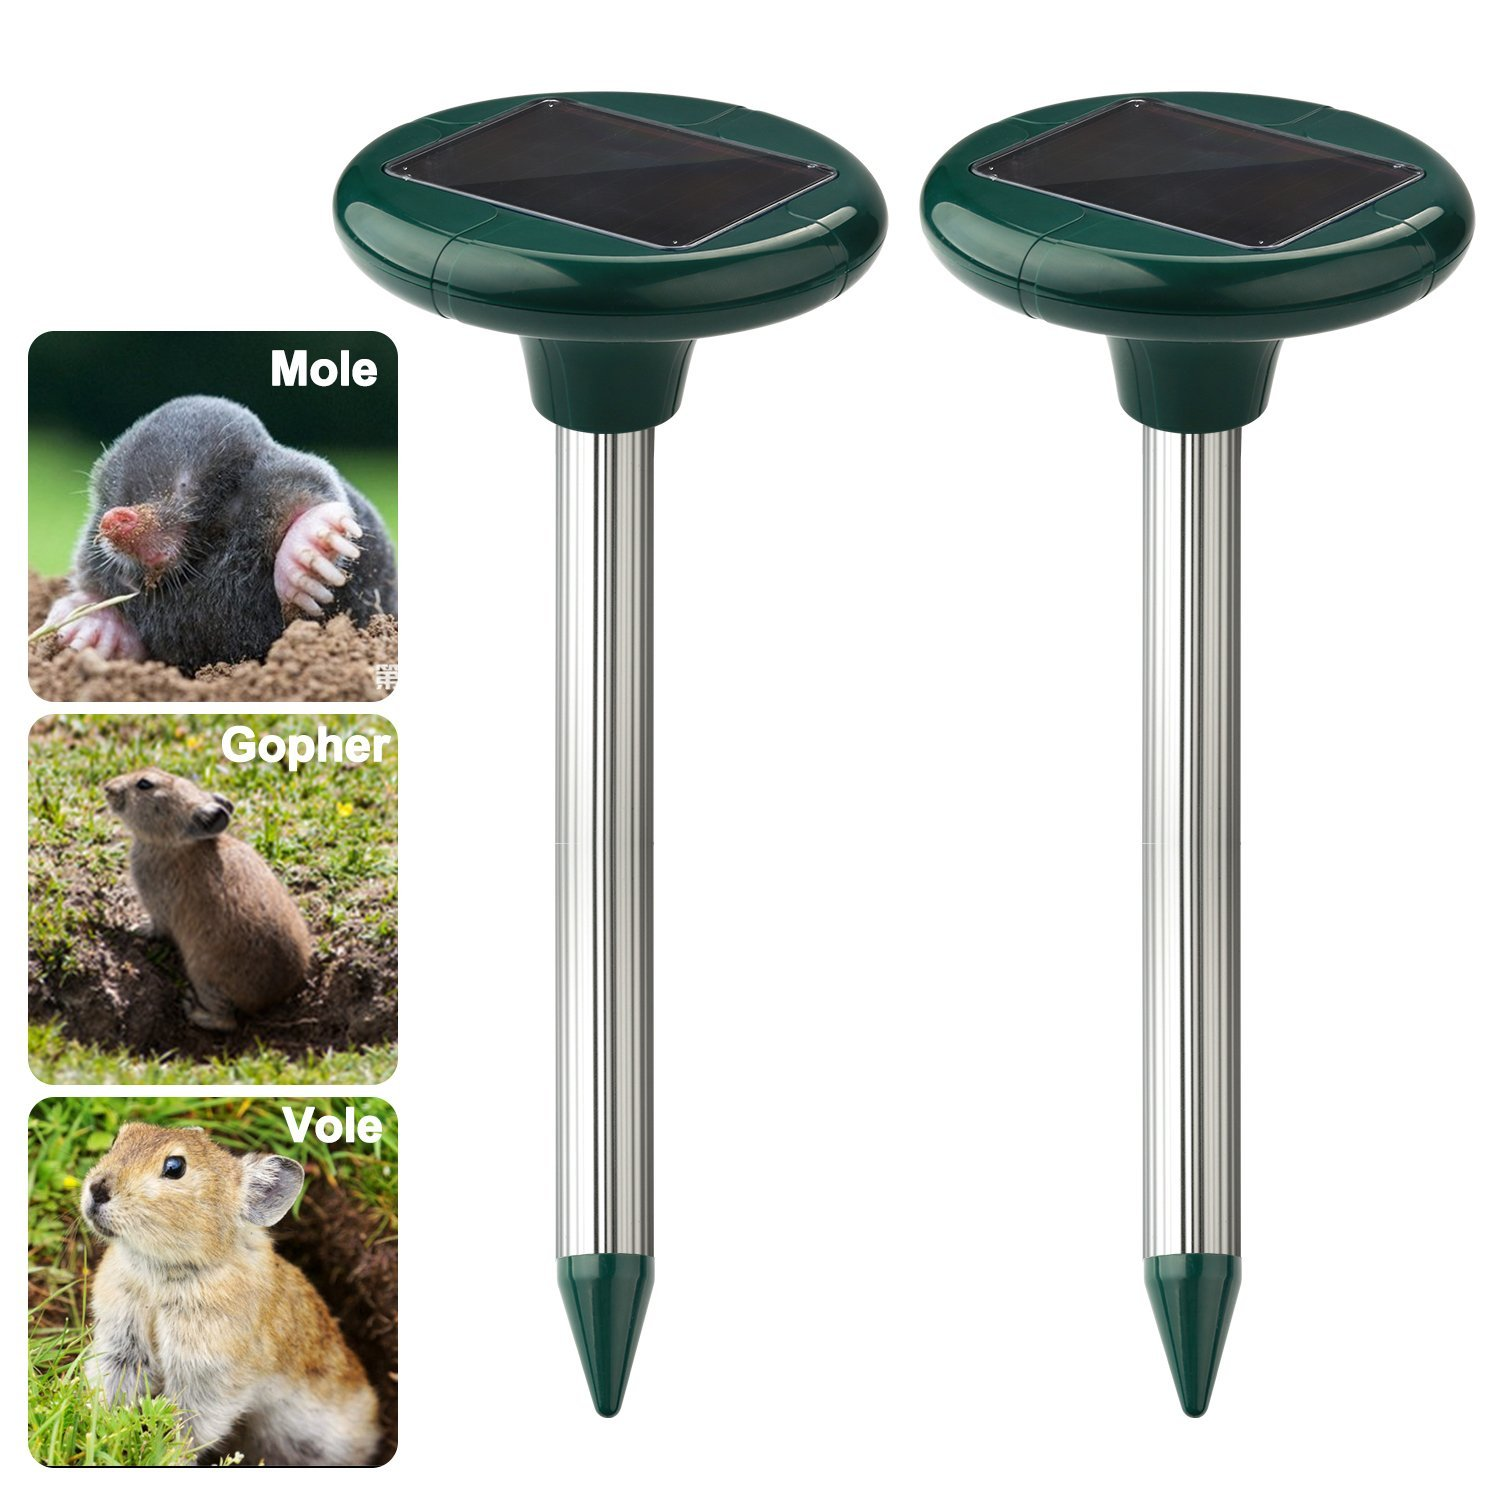 Solar Powered Sonic Mole Repeller Set of 2, Effective Gop...